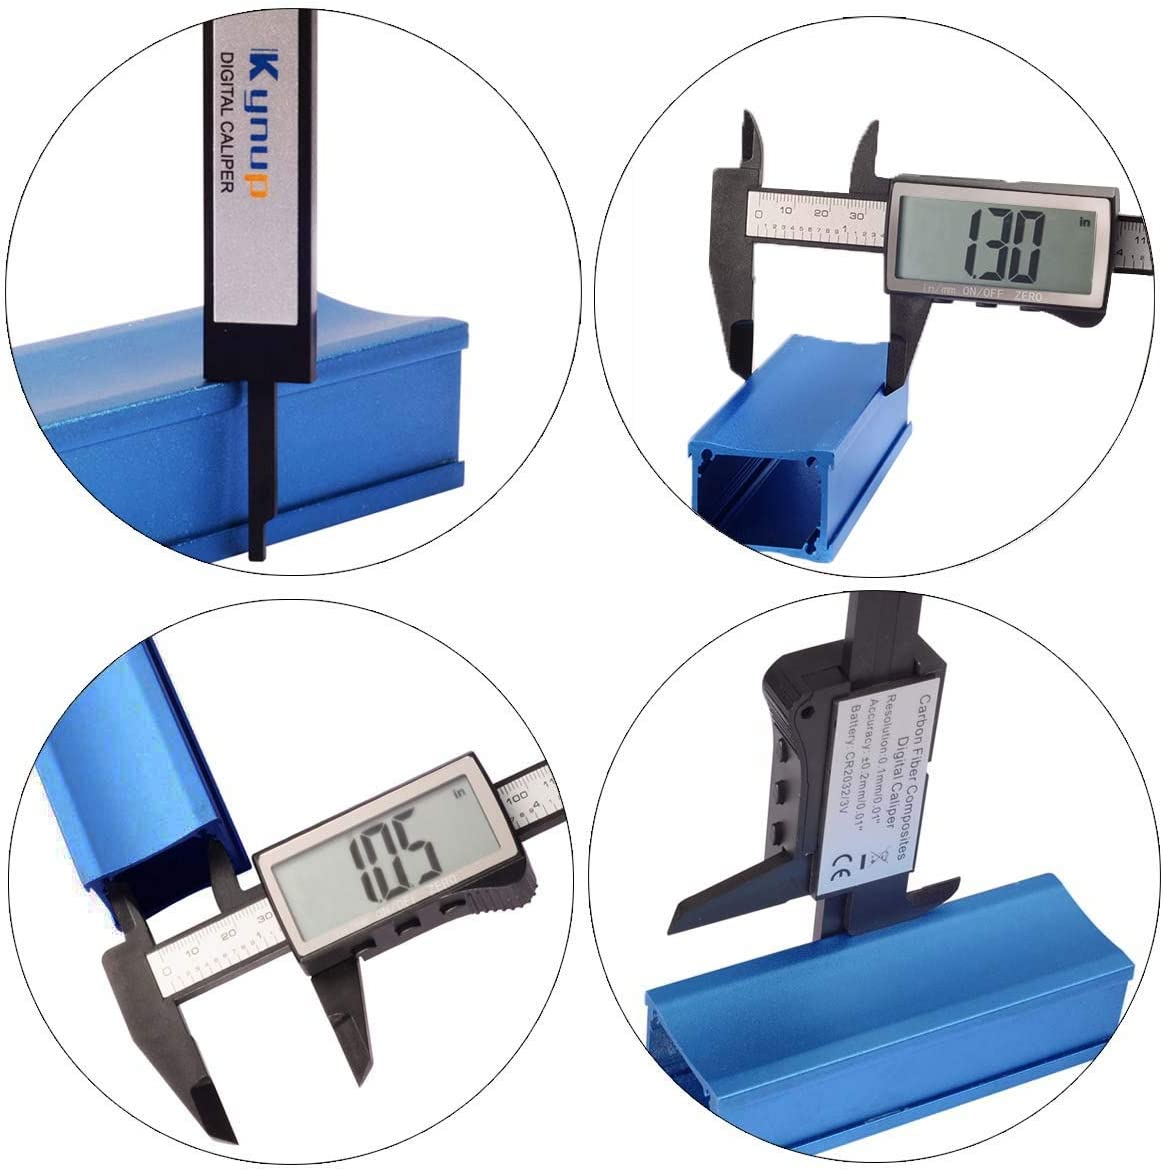 Kynup Digital Caliper 6Calipers Measuring Tool Micrometer Caliper with Large LCD Screen Auto-Off Feature Inch and Millimeter Conversion